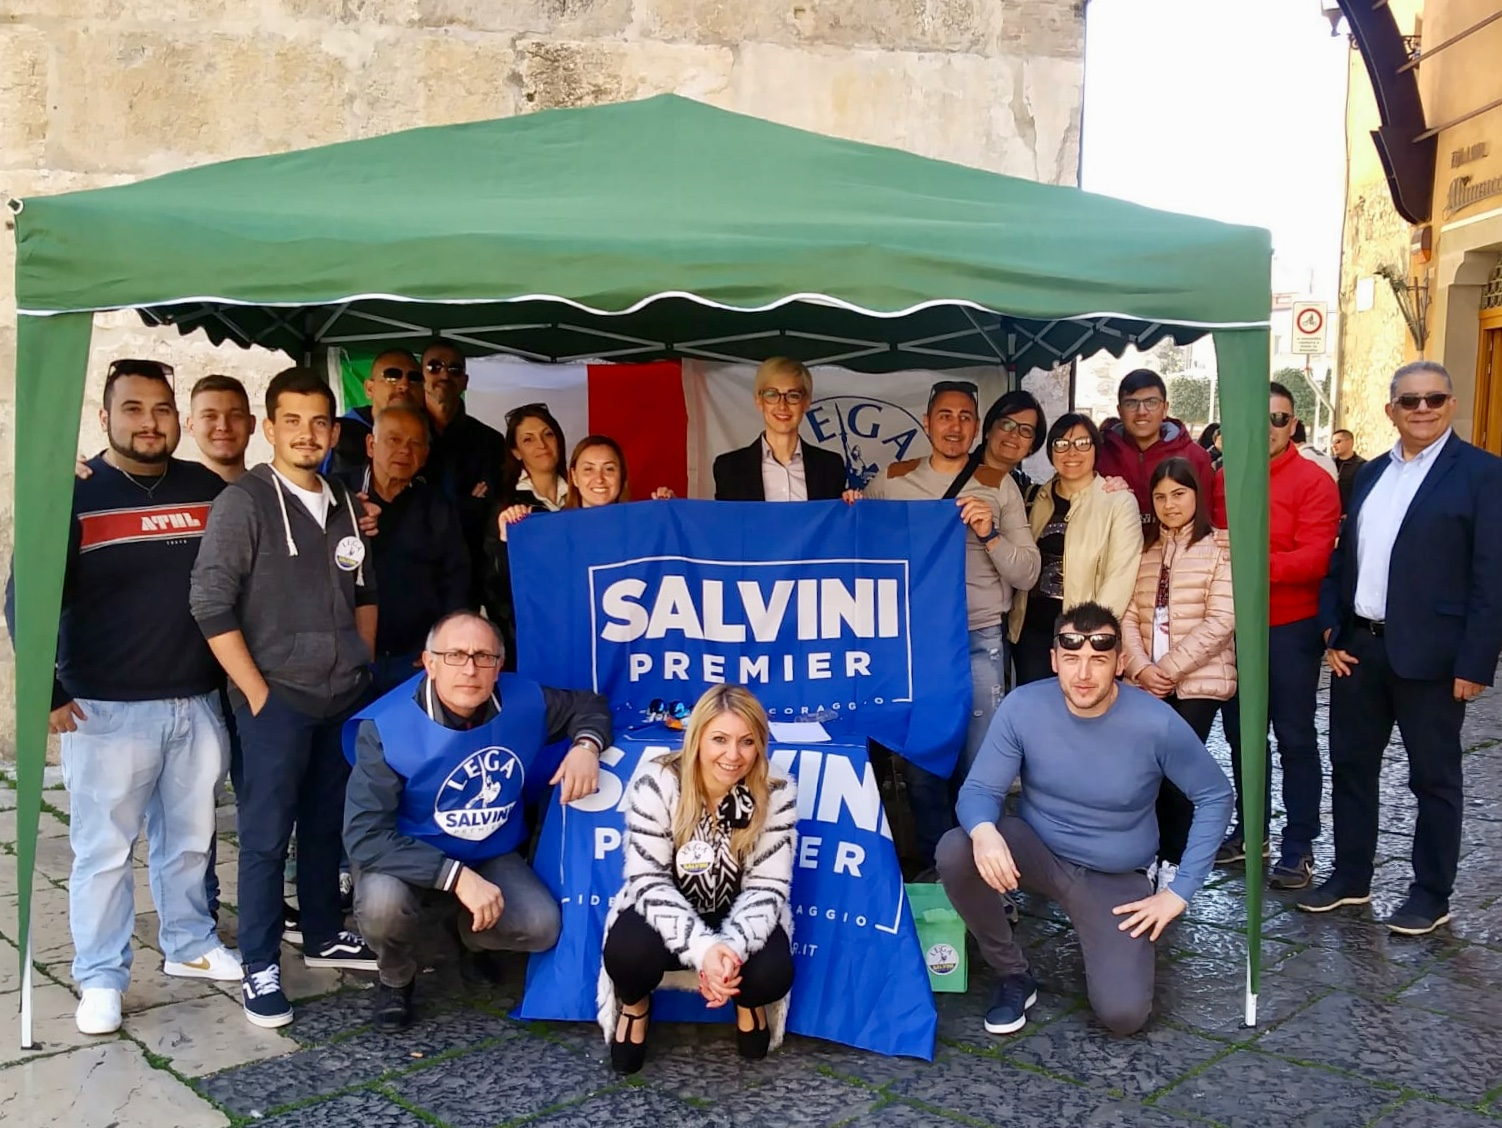 gazebo domenica 24 mar 2019